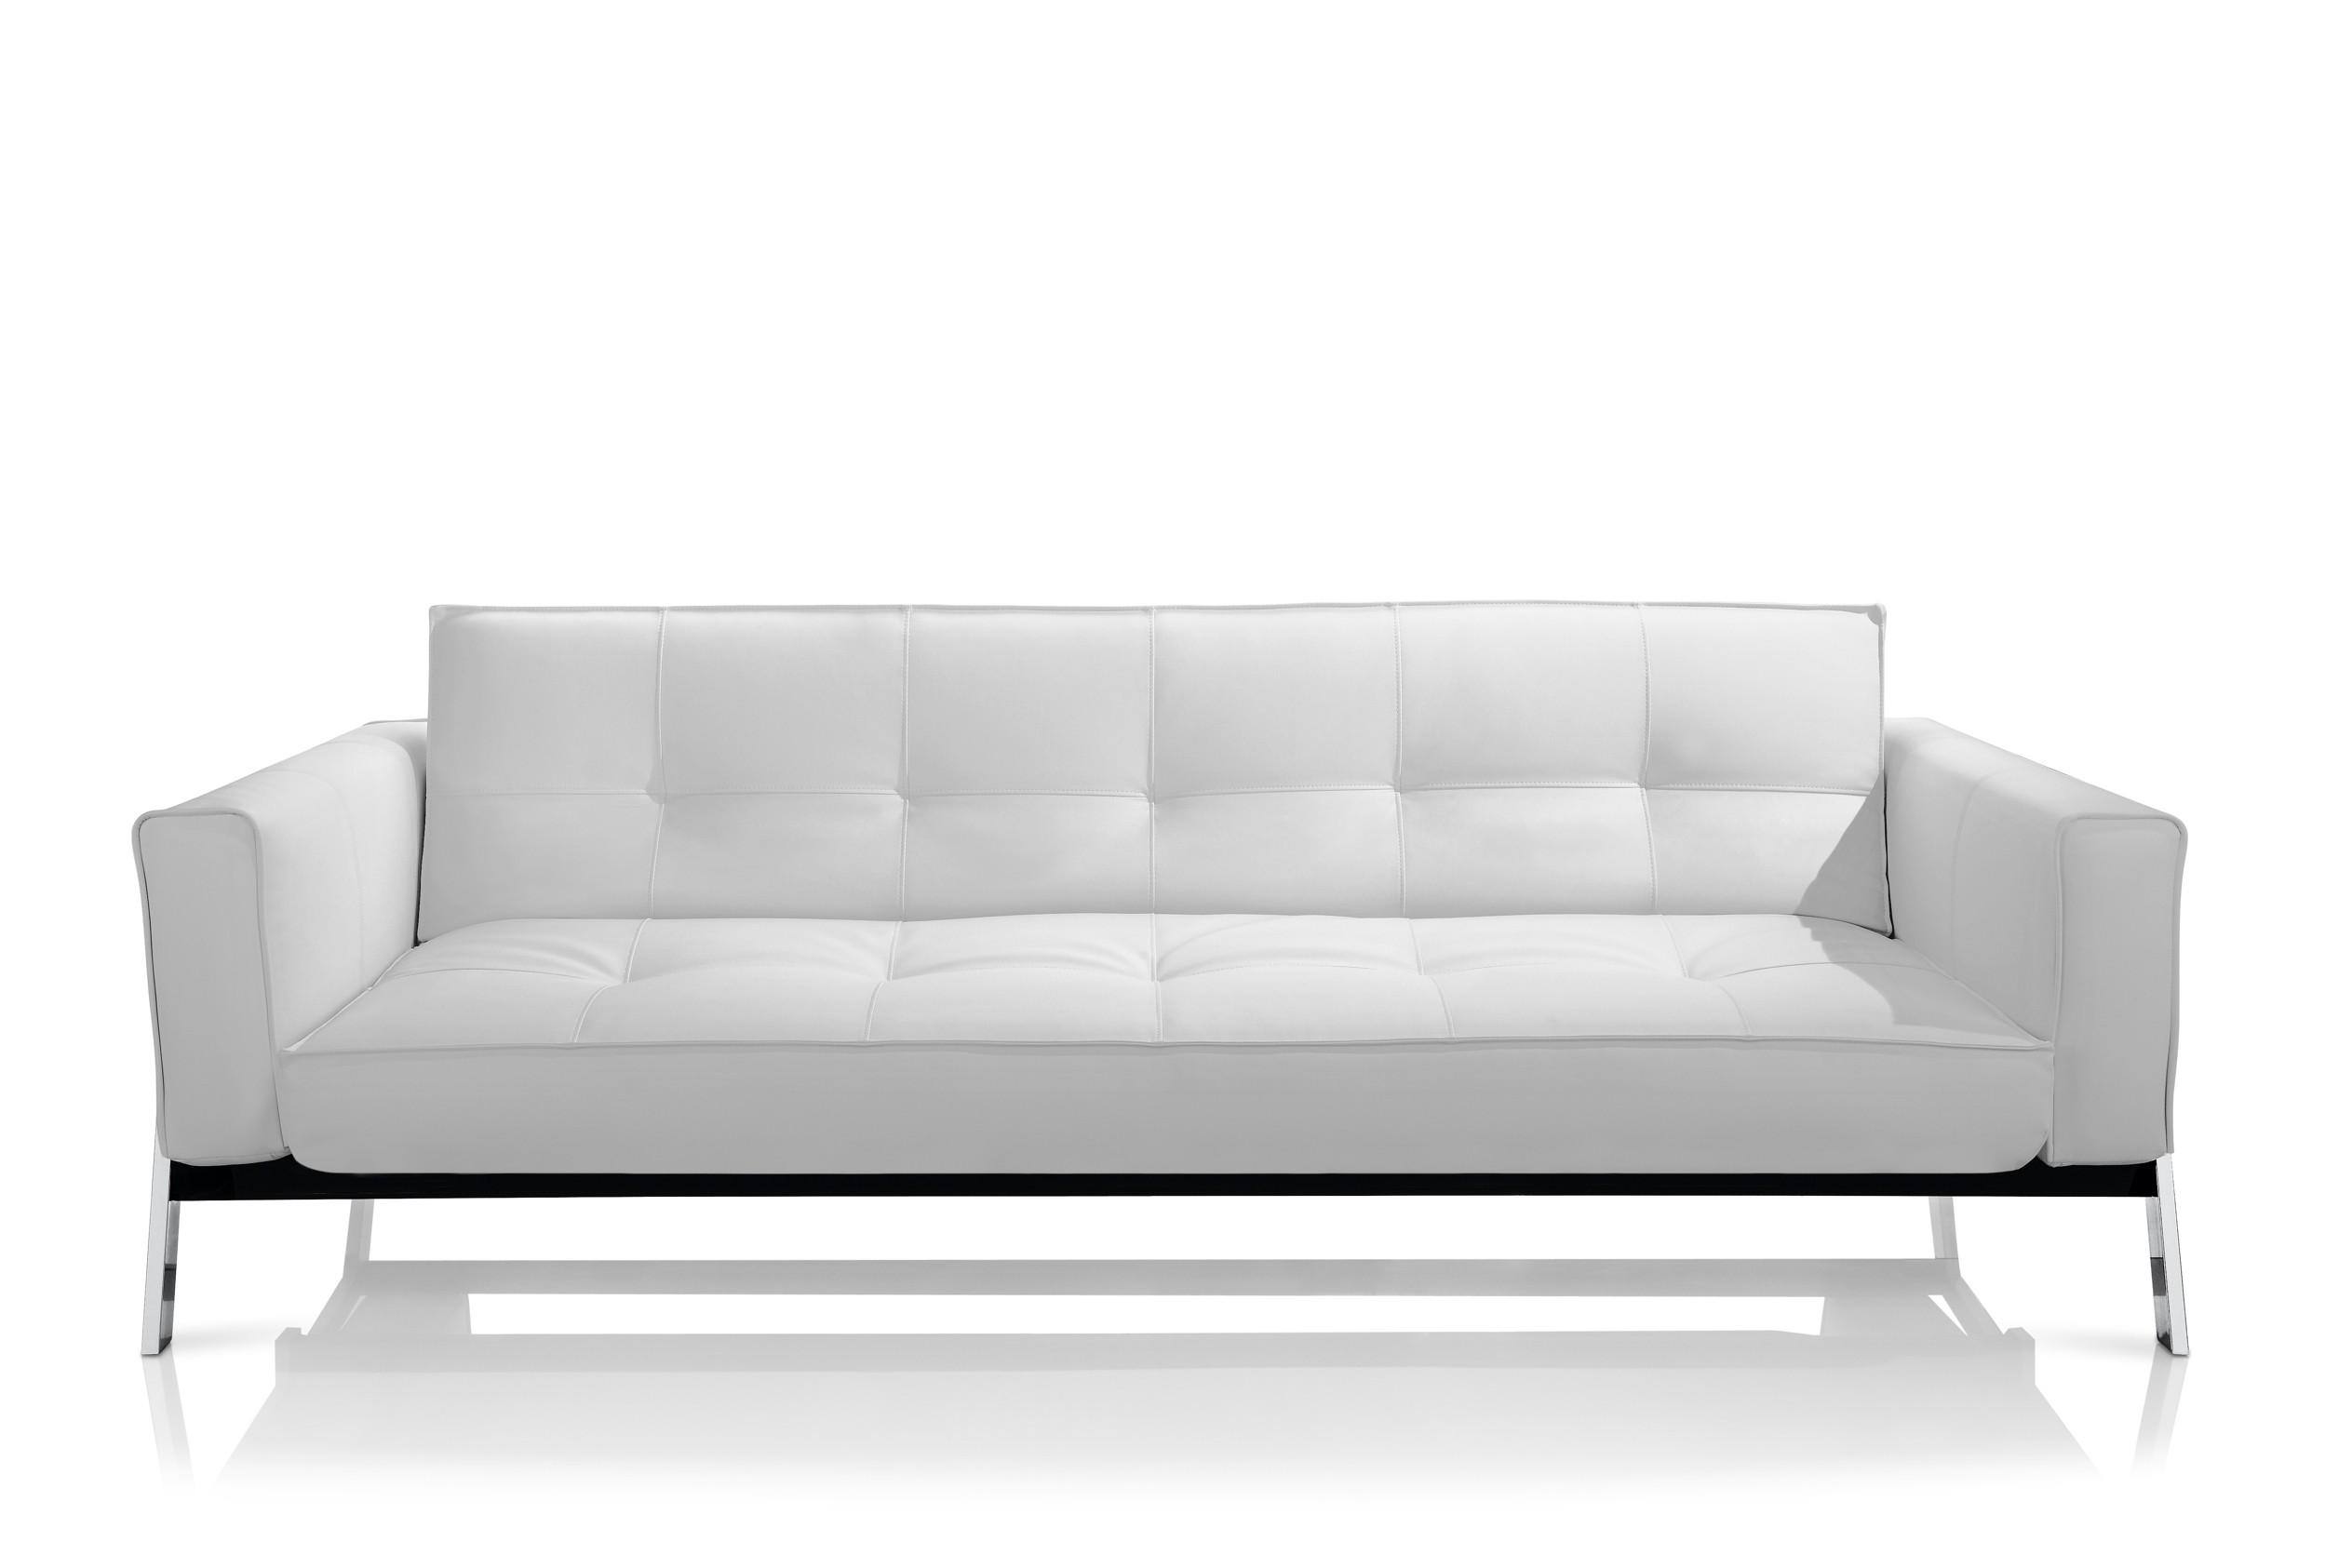 New White Fabric Sofa 30 Sofas And Couches Set With White Fabric Sofa Throughout White Fabric Sofas (Image 13 of 20)